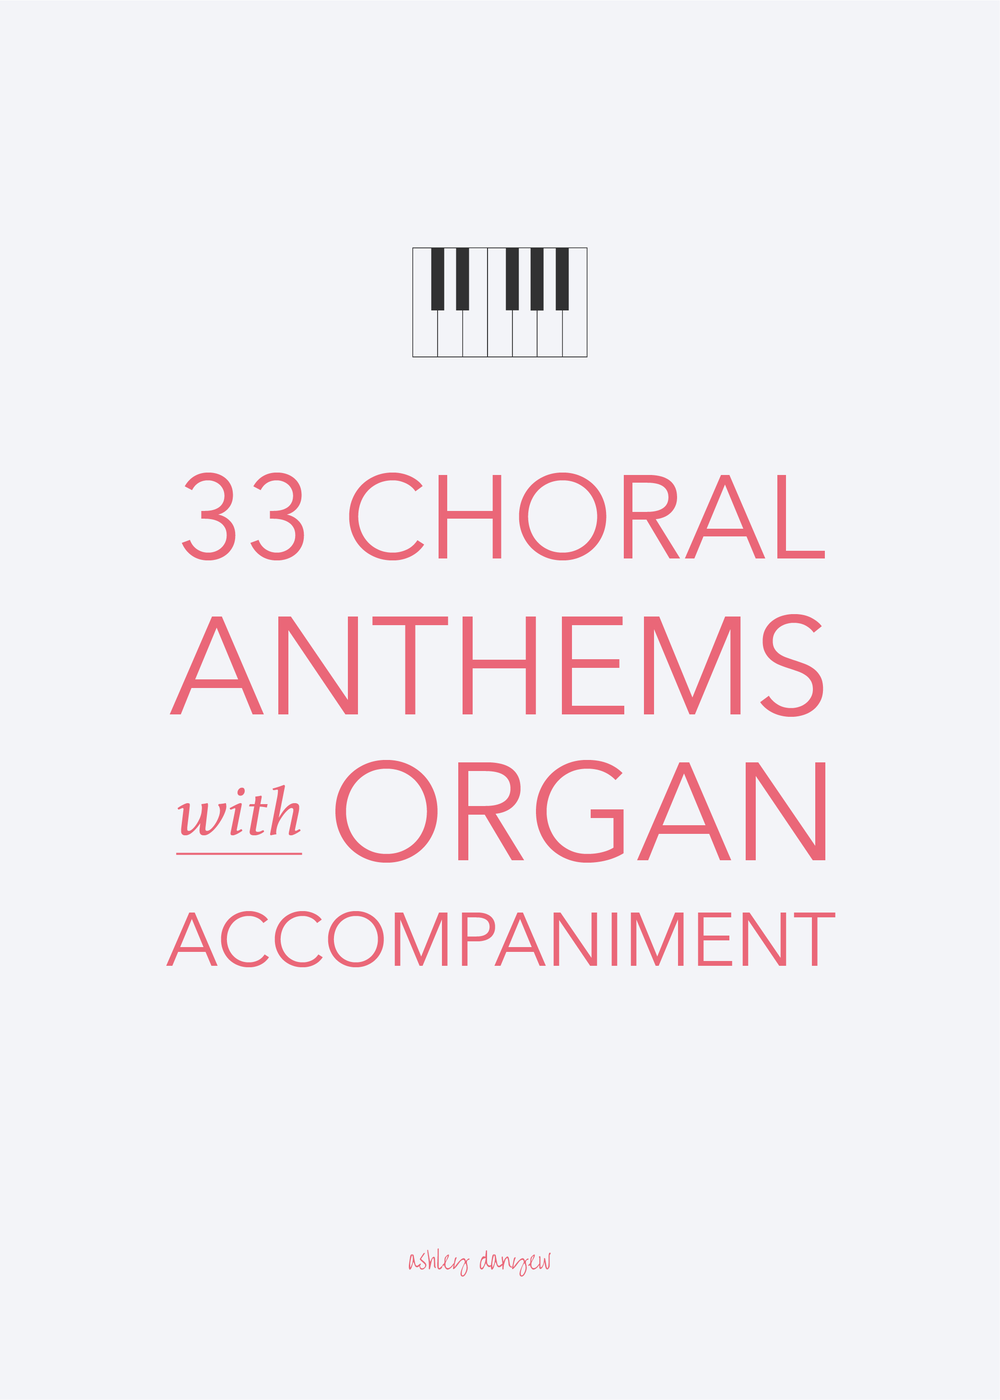 Copy of 33 Choral Anthems with Organ Accompaniment